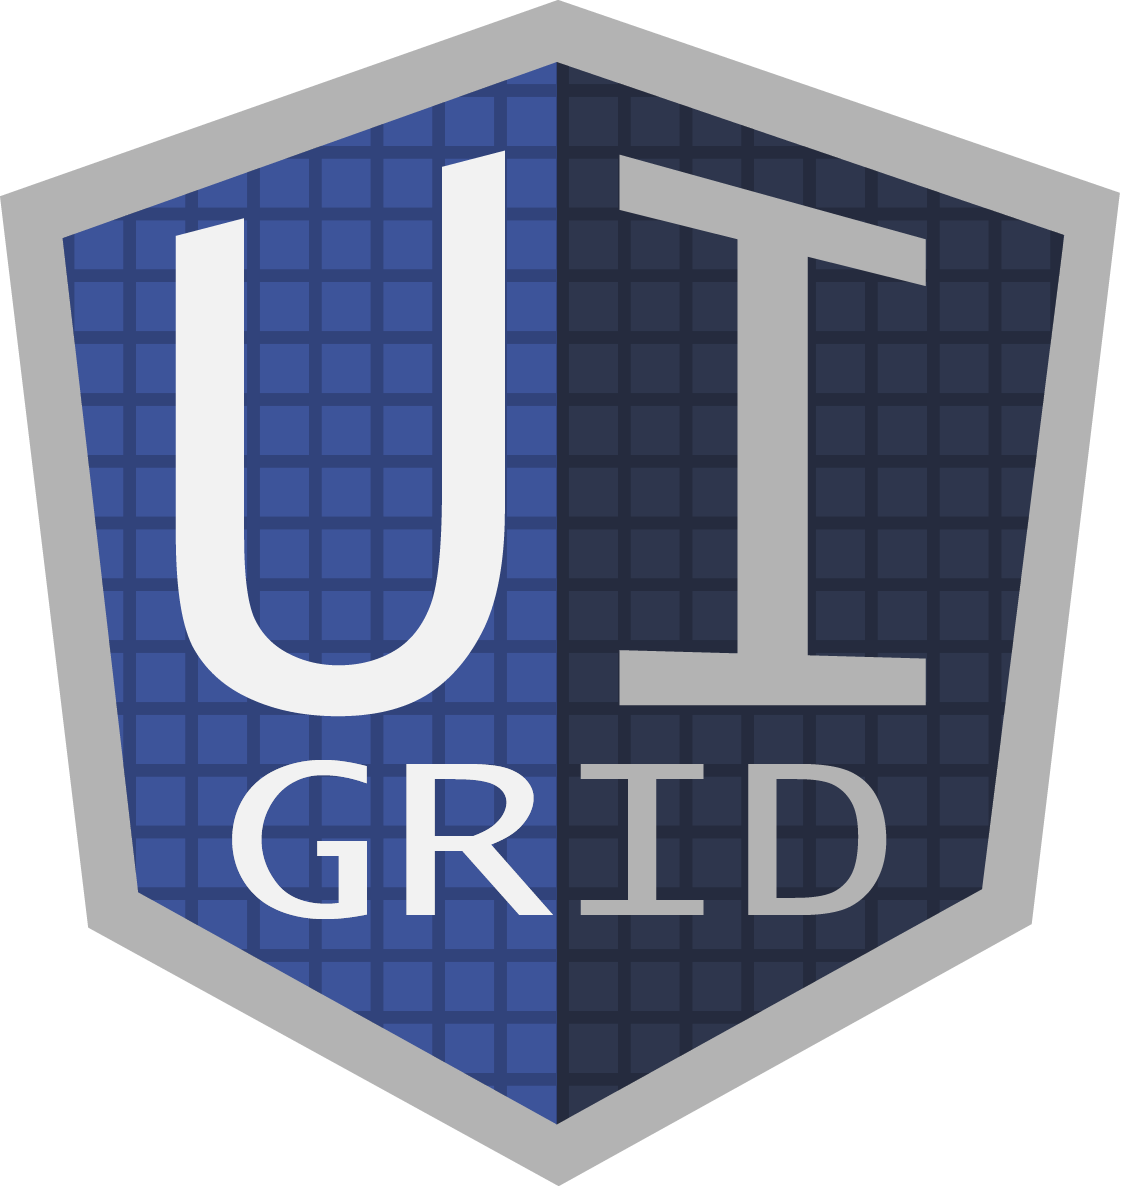 Why The World Needed Another Angular Grid - ag-Grid - Medium